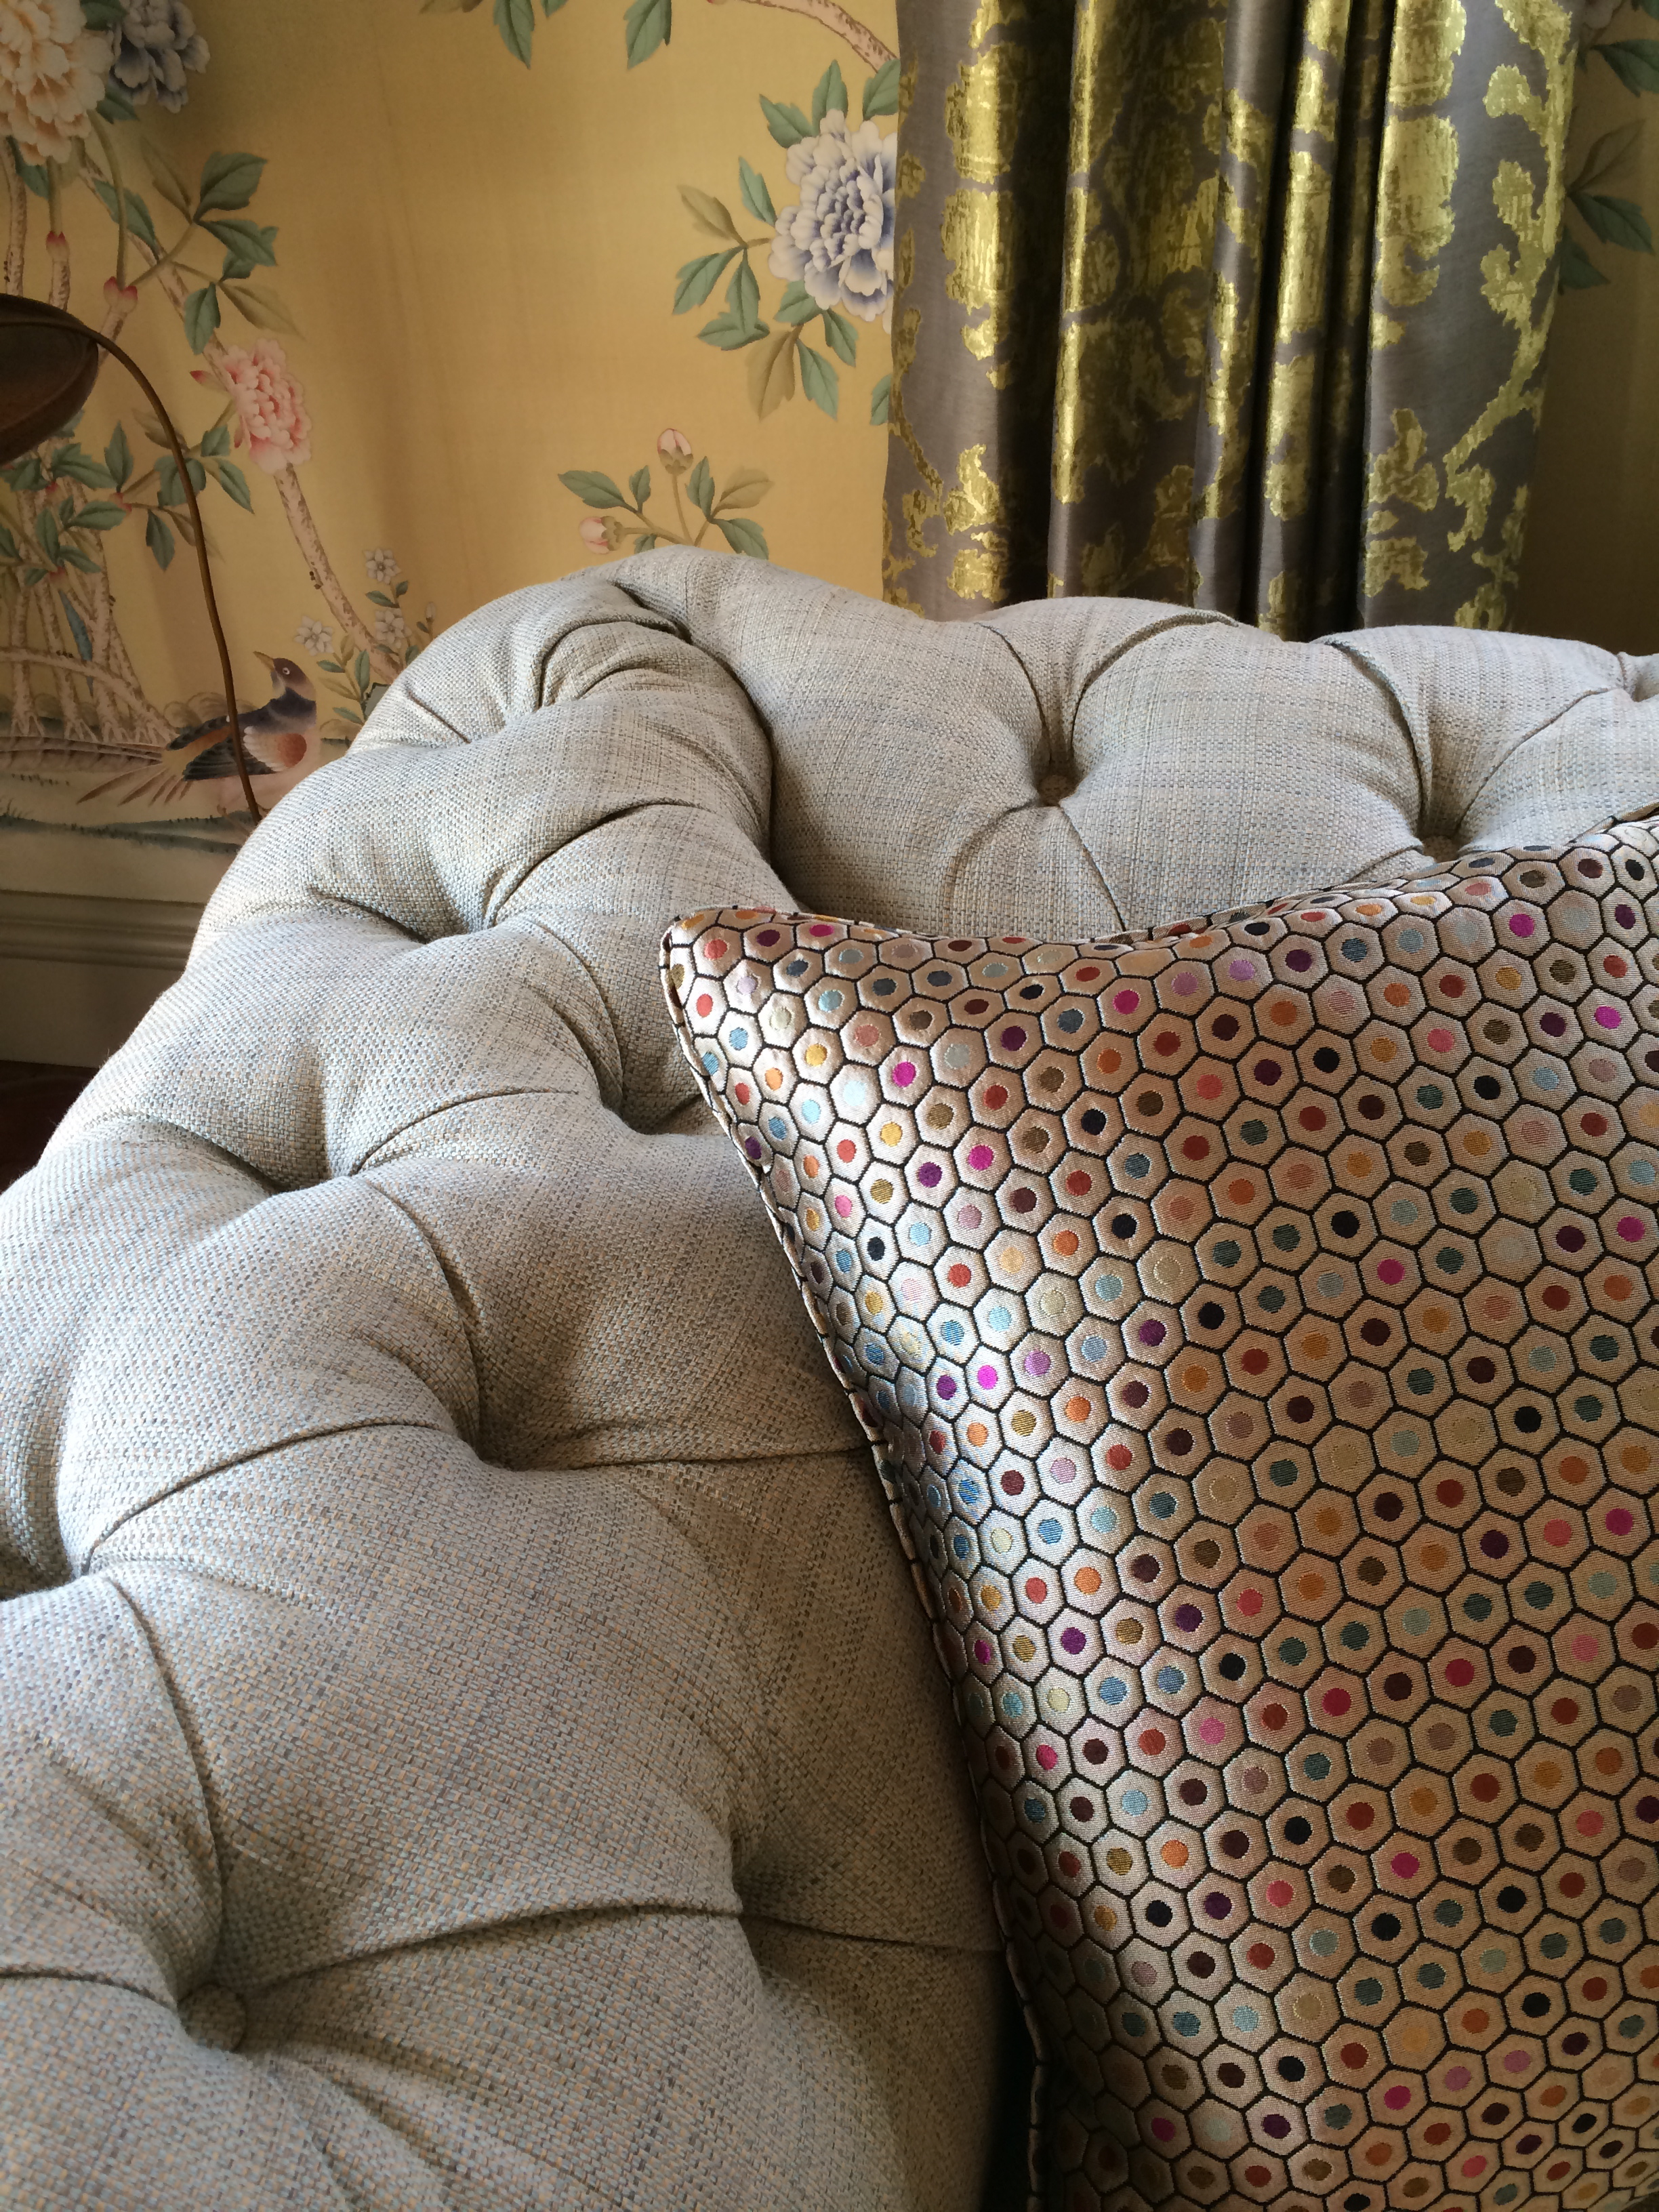 Traditional interior with a quirky touch. Detail of a chesterfield sofa and geometric print cushion and hand-painted silk wallpaper in the background.